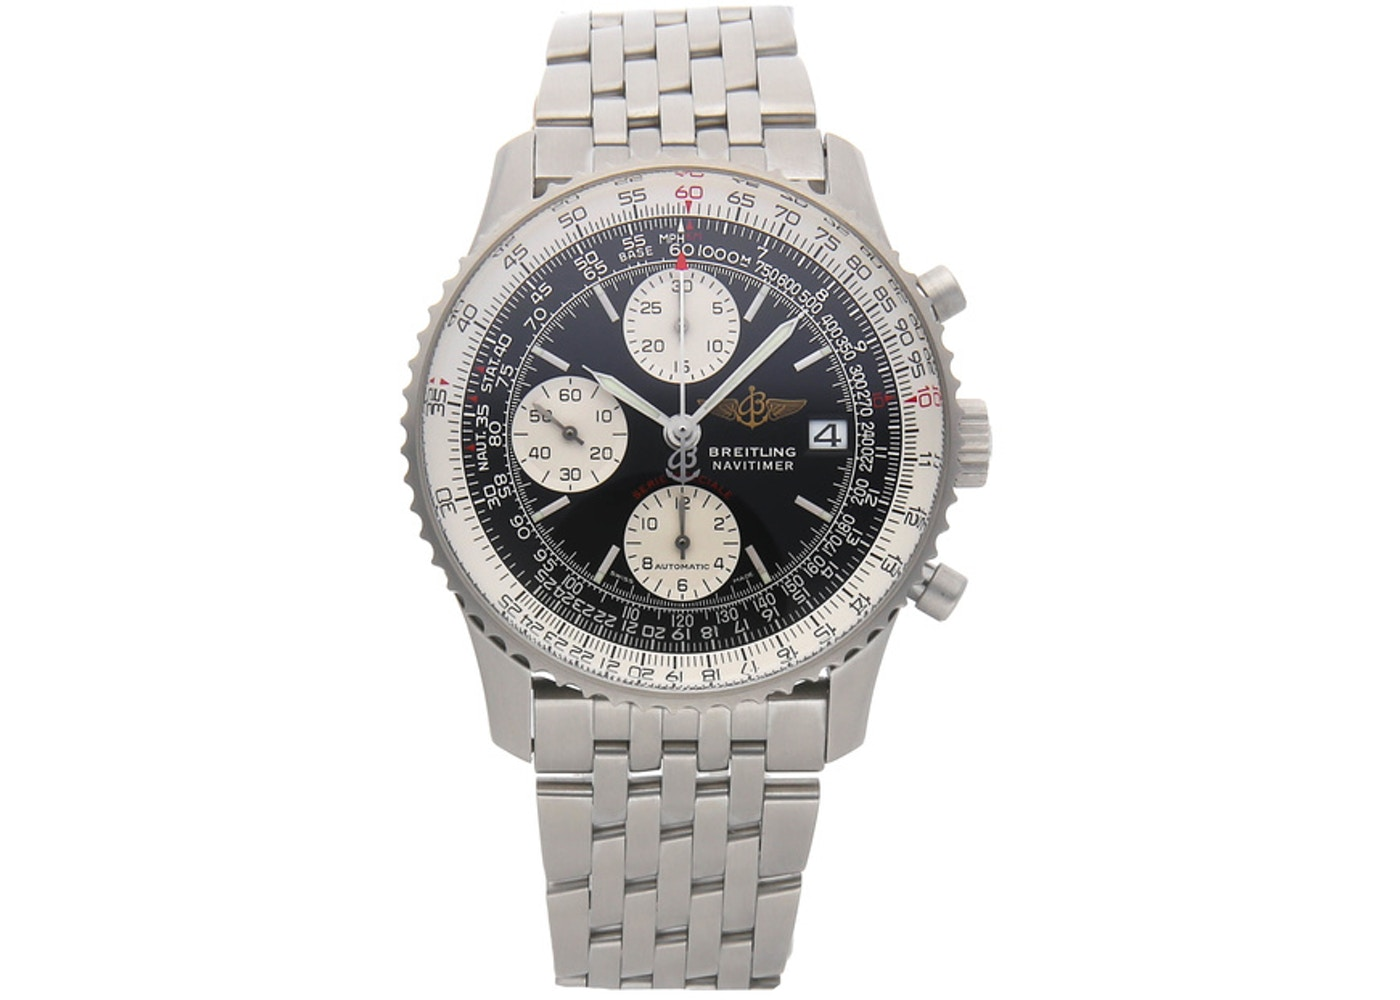 Breitling Navitimer Breitling Fighters A1333010 B520